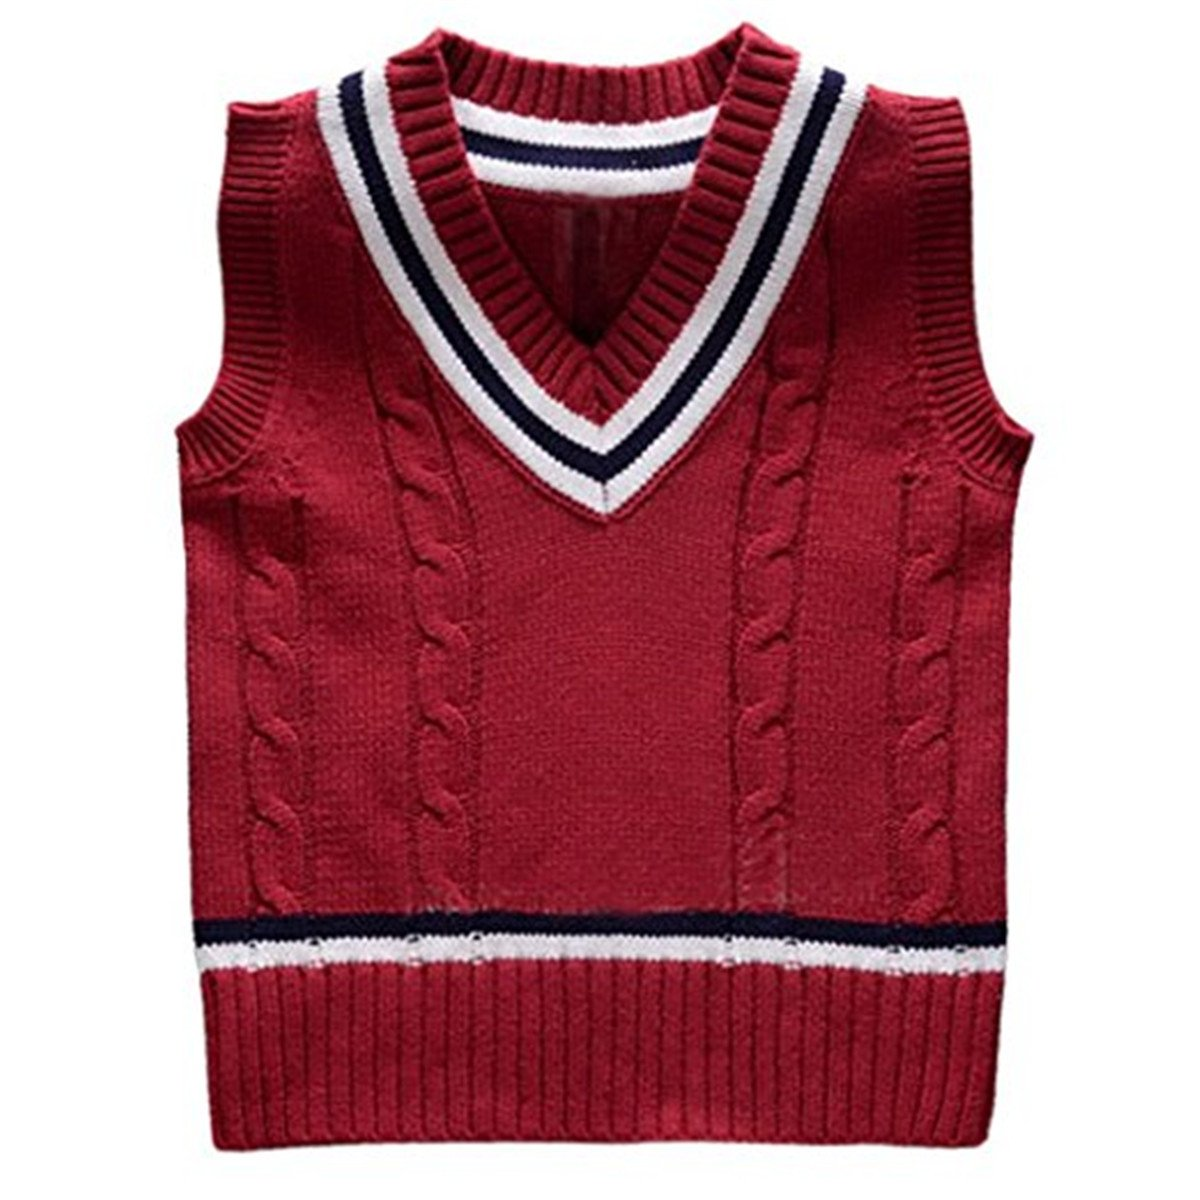 Baby Boys Toddler V-Neck Solid Color Cable Knit Pullover Sweater Vest AVTD002